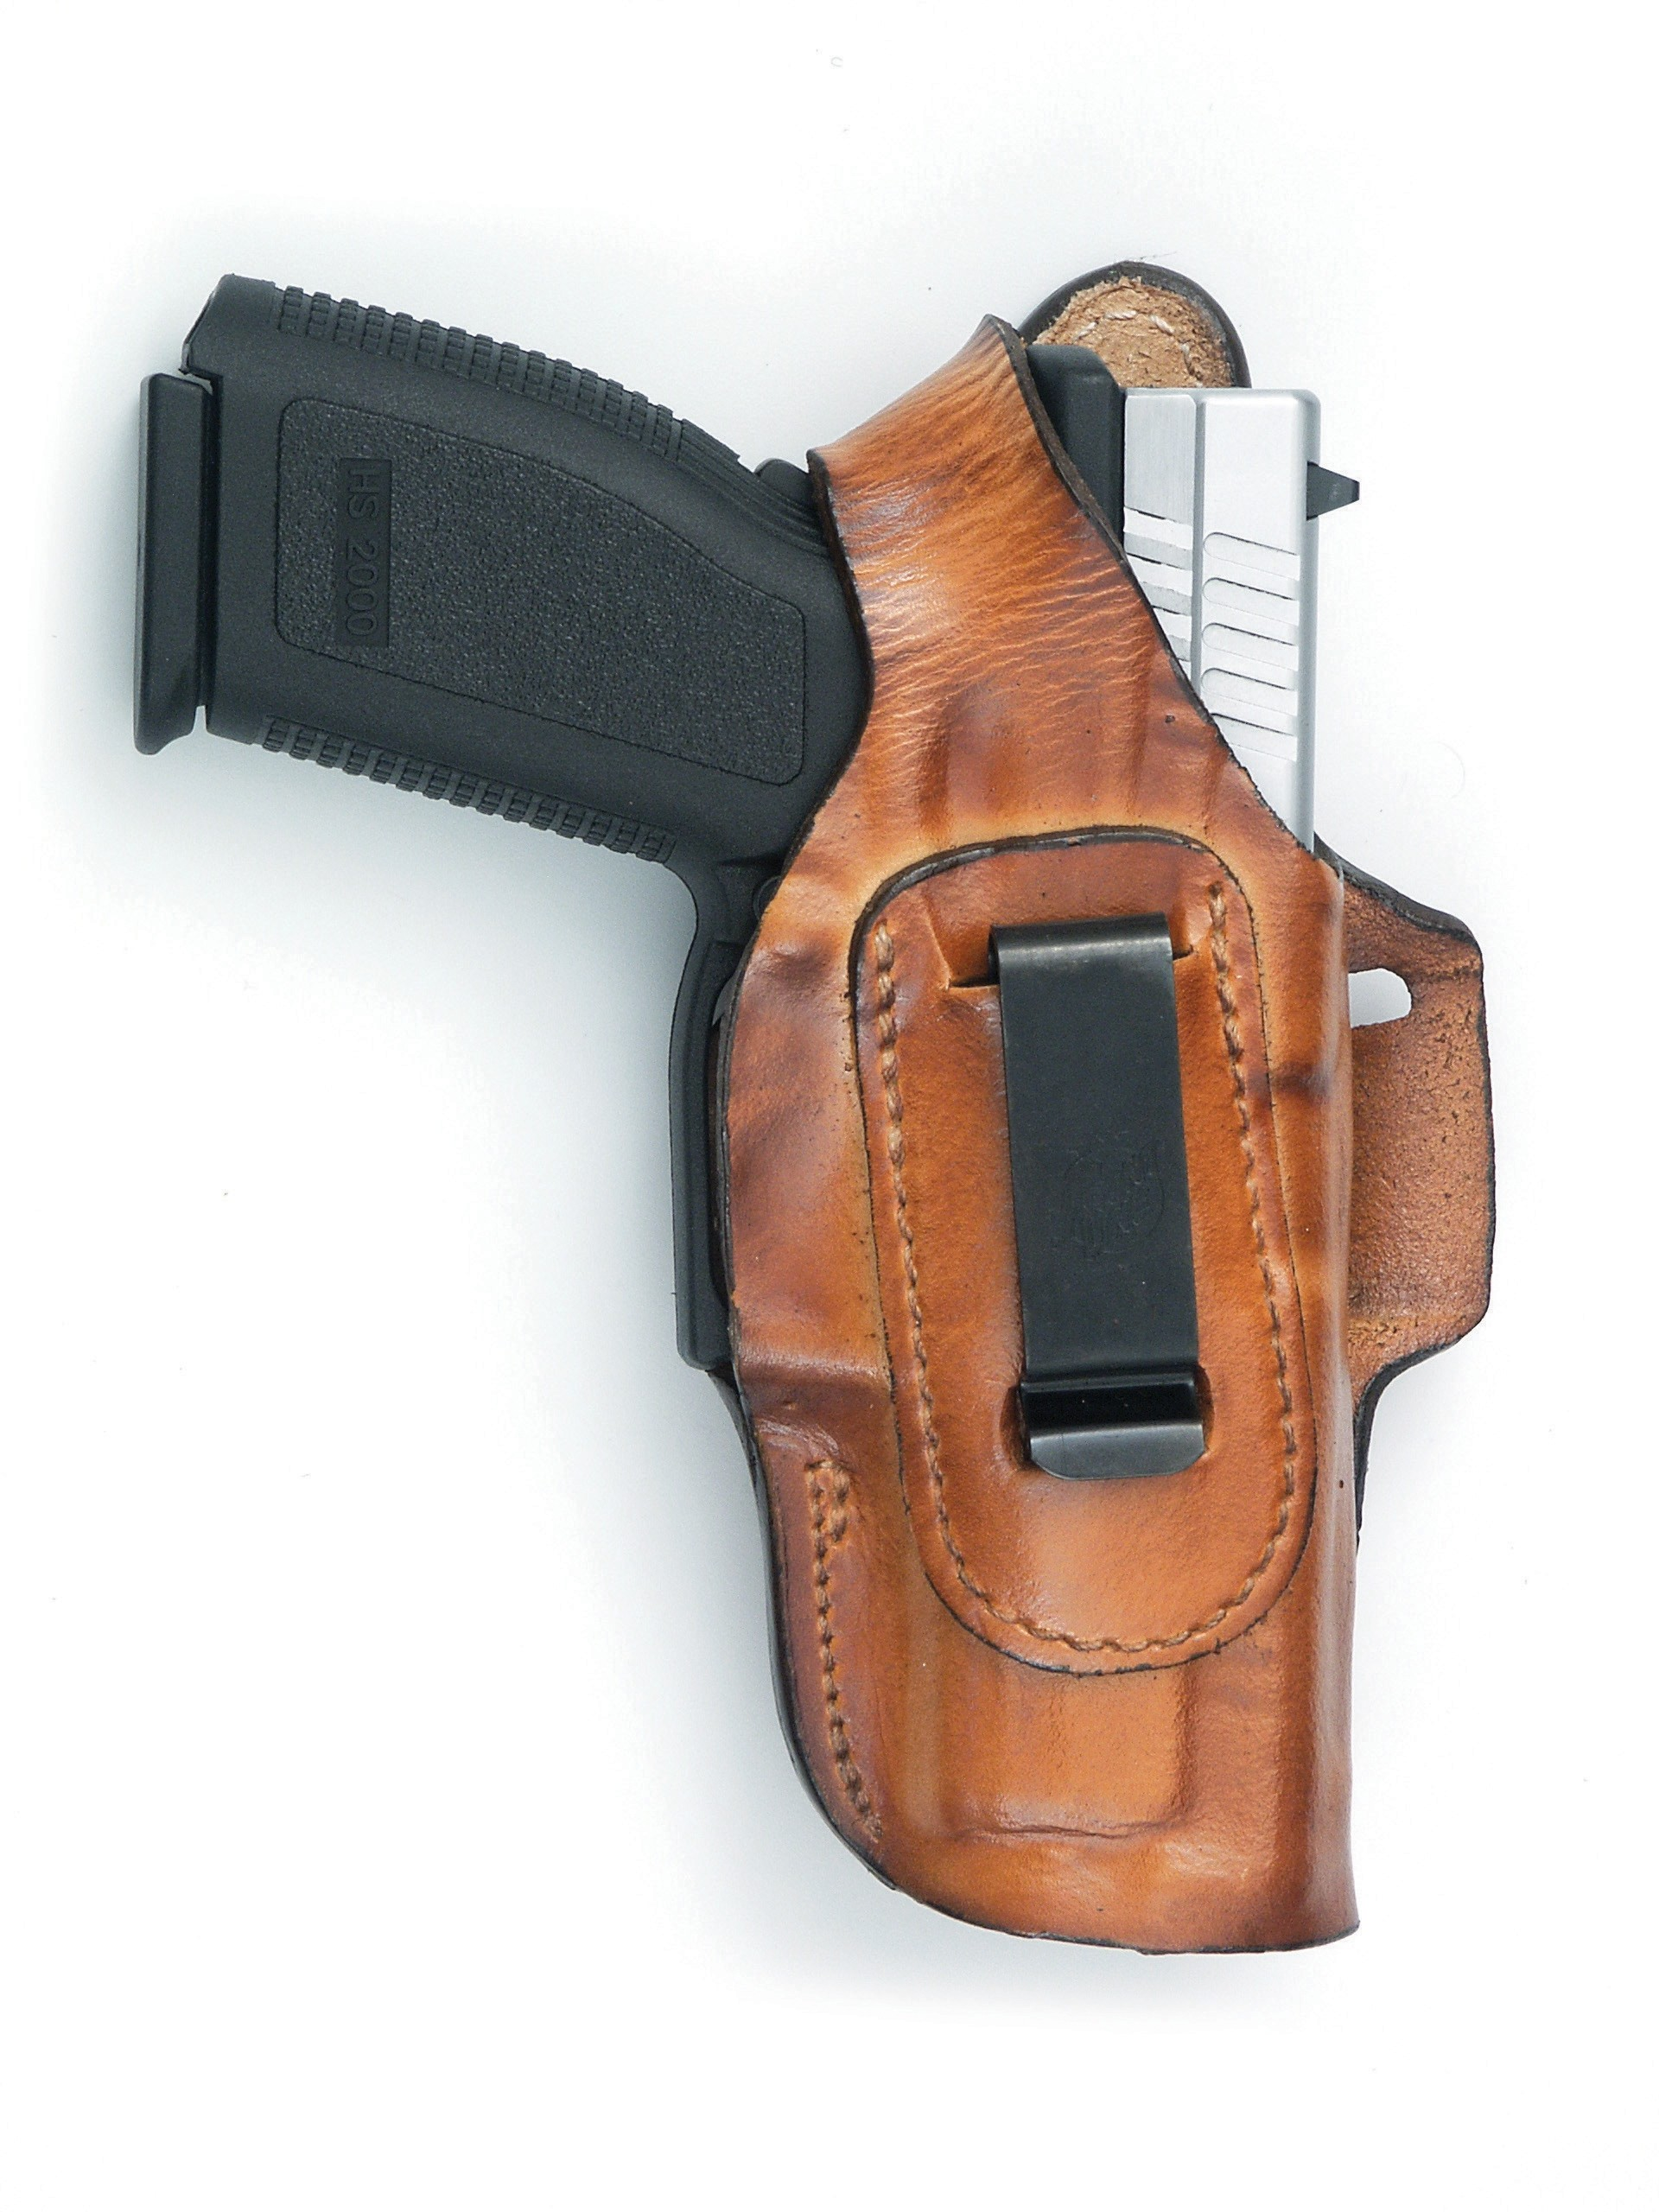 Fast-Draw Four Way Leather Holster